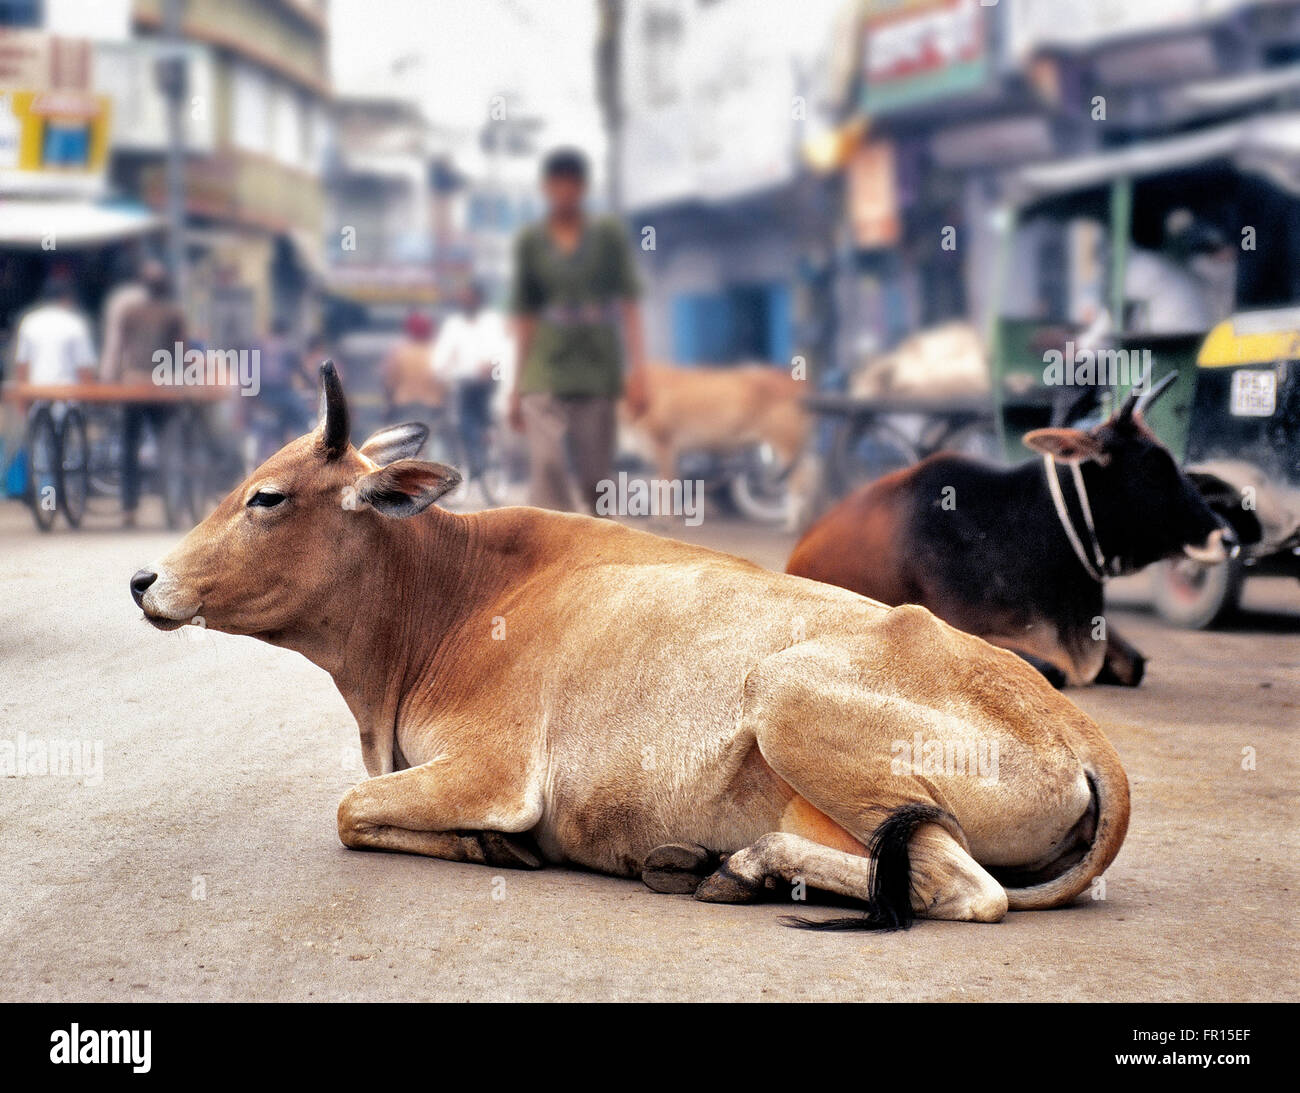 A cow resting in the middle of the street, people walking around in Manali, India on 31 December 2003 - Stock Image